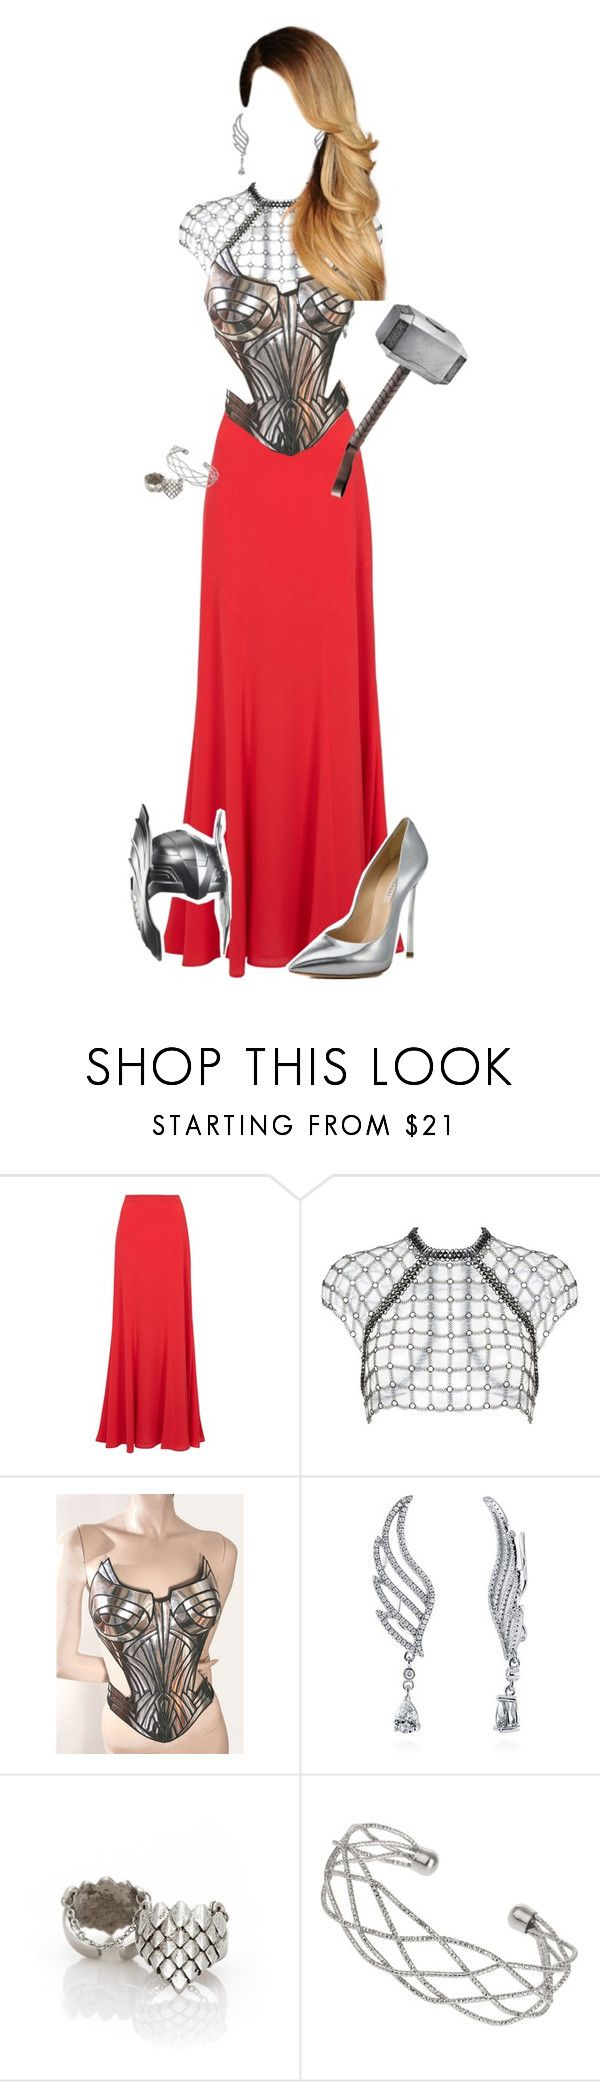 """Lady Thor"" by potterhead212 ❤ liked on Polyvore featuring Boutique Moschino, Fannie Schiavoni, BERRICLE, Ever Eden by Michelle Phan, Wallis and Casadei"